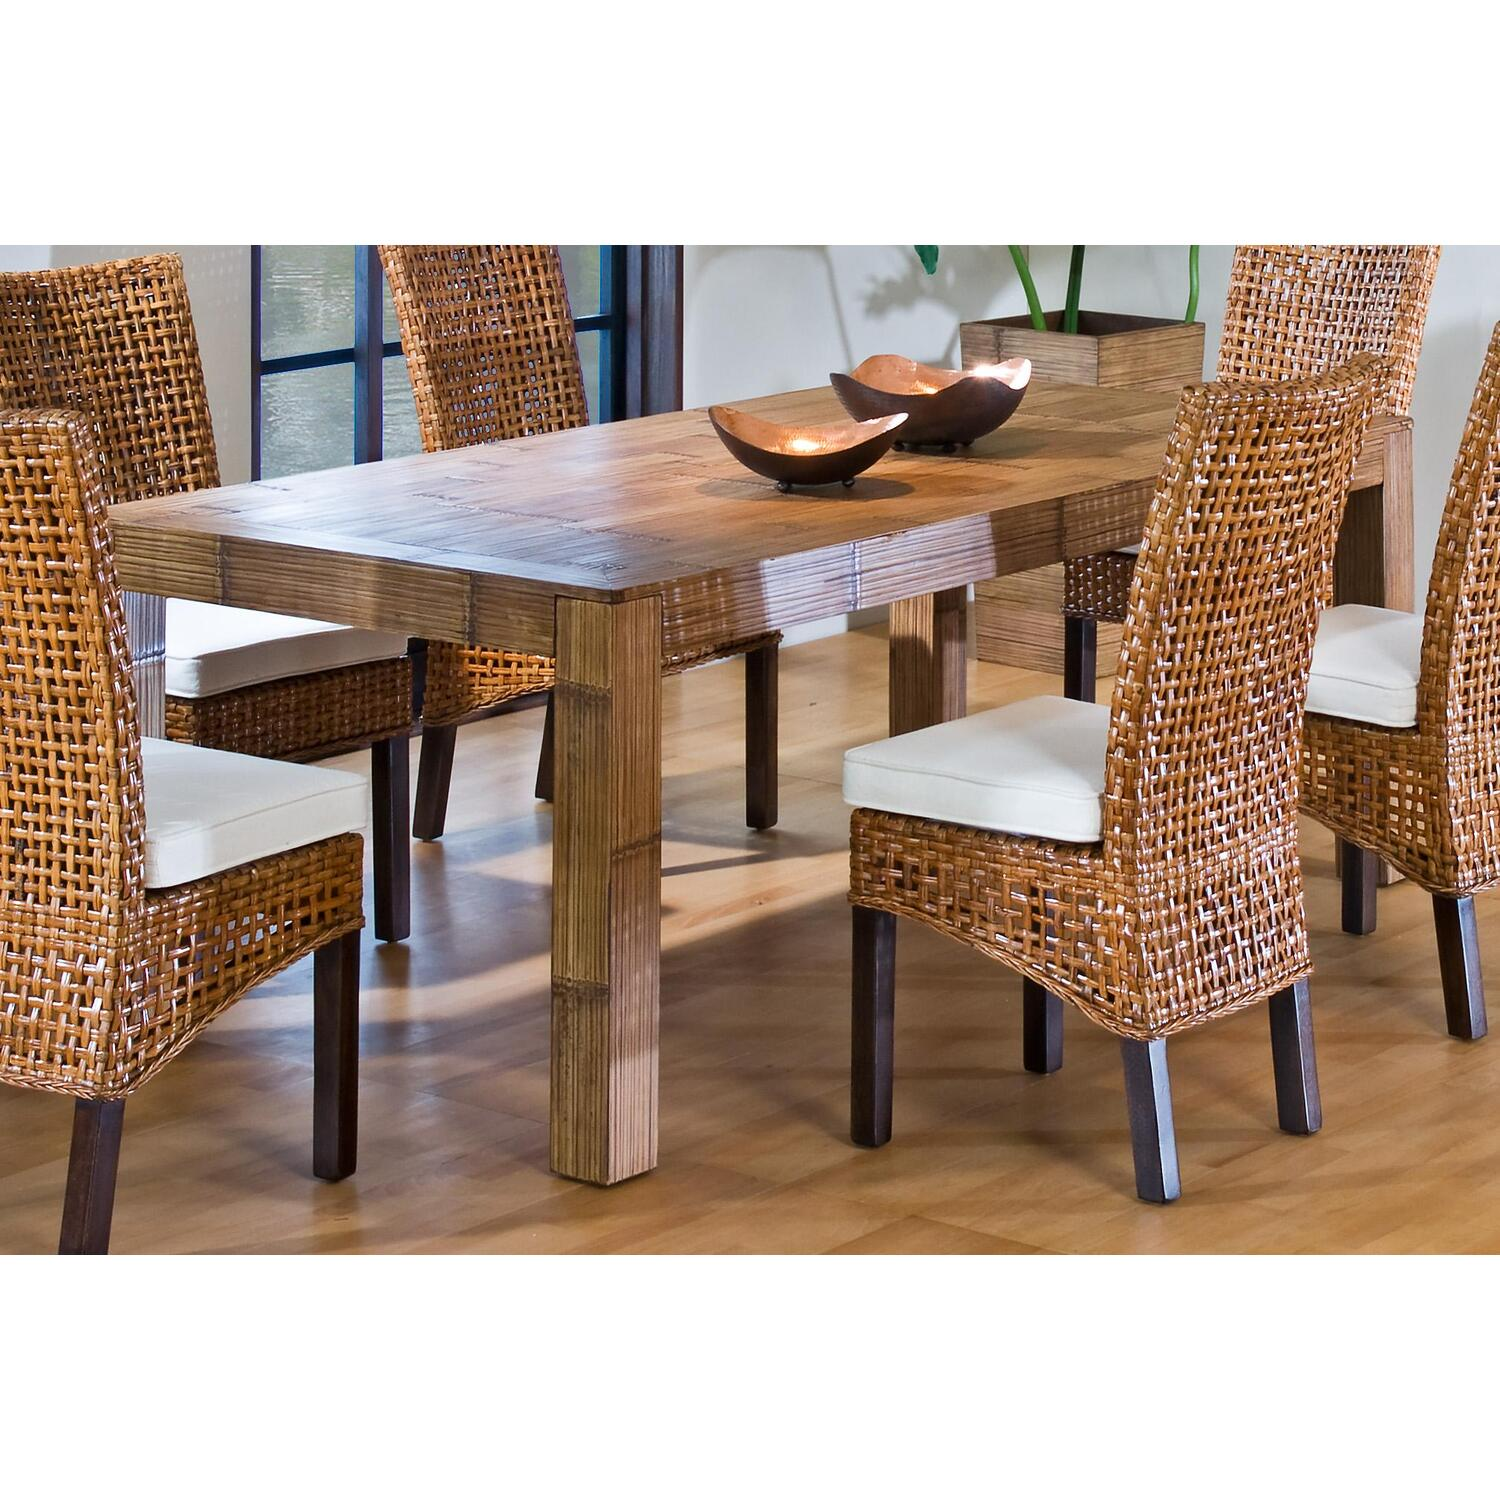 Dining table indoor wicker dining table - Muebles de rattan ...